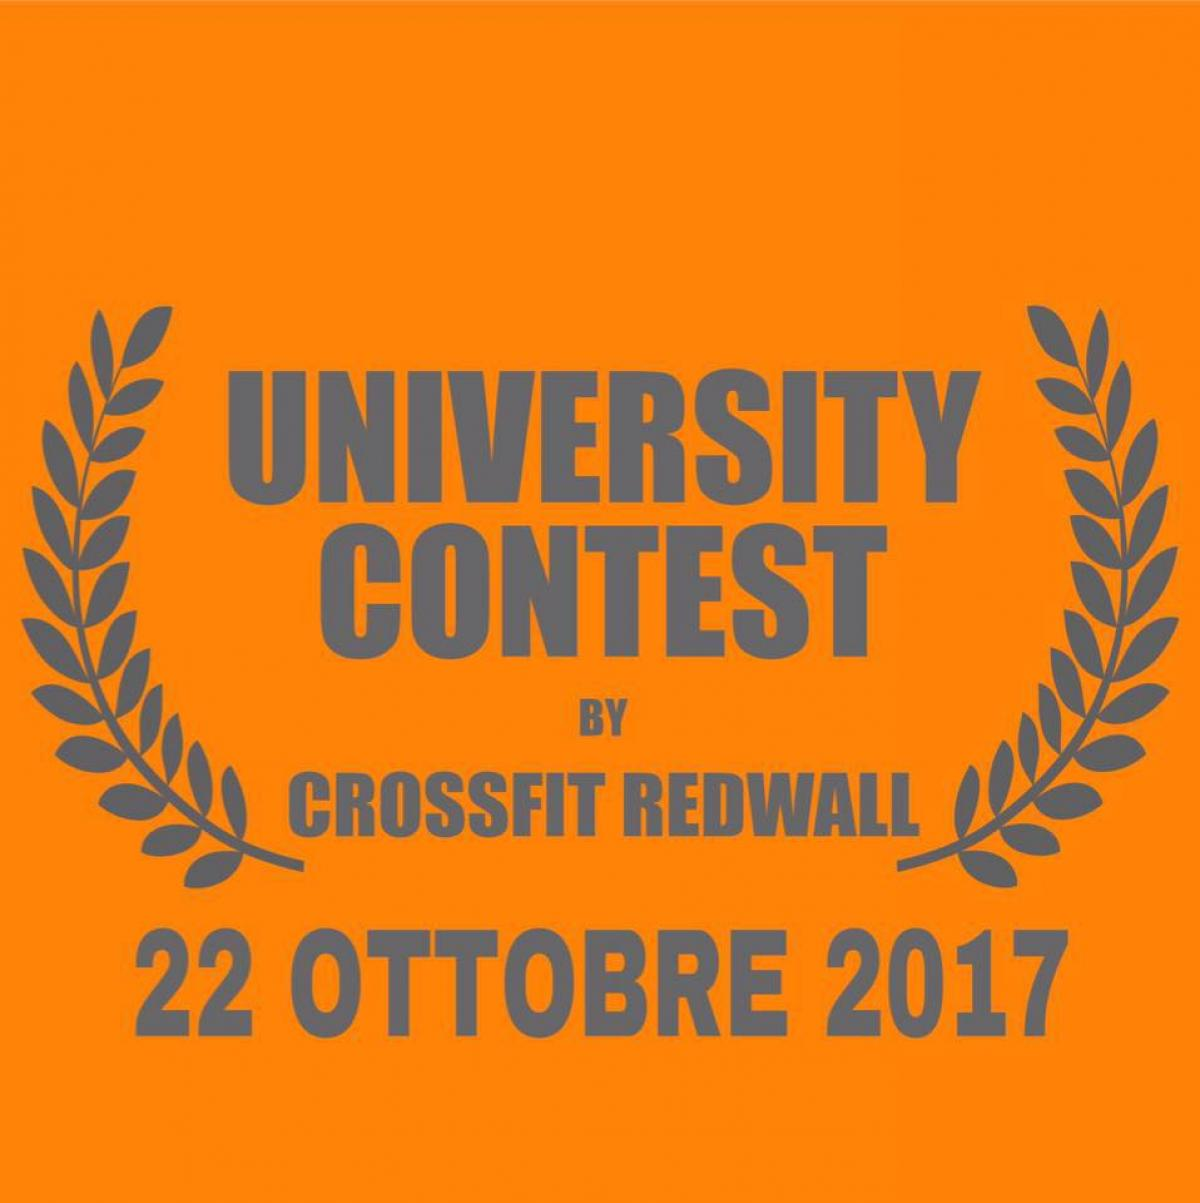 University Contest 2017 by CrossFit Redwall